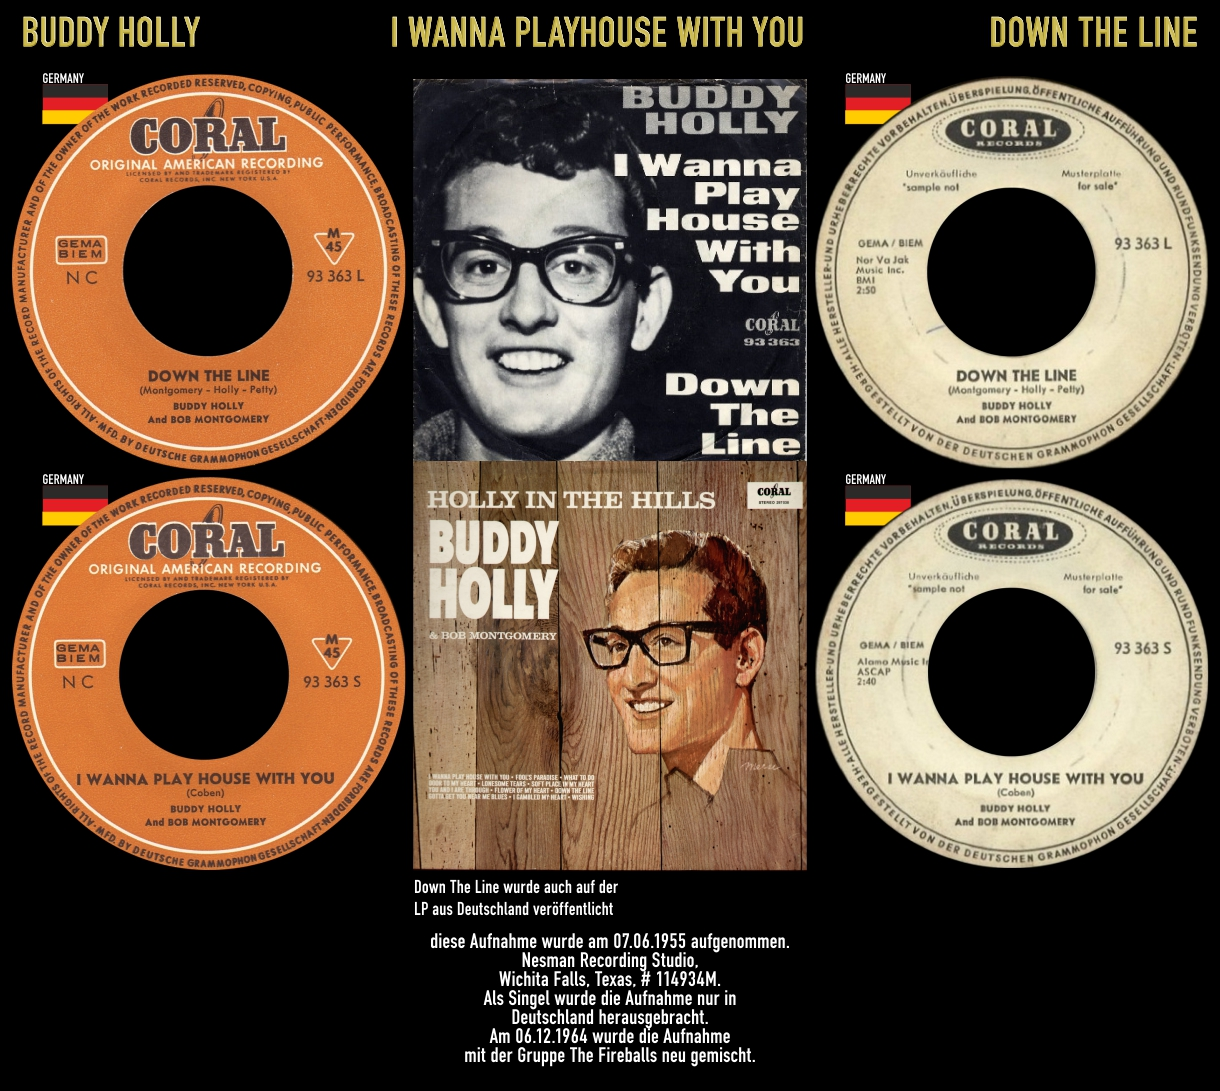 550607_Buddy Holly_I Wanna Playhouse With You_Down The Line